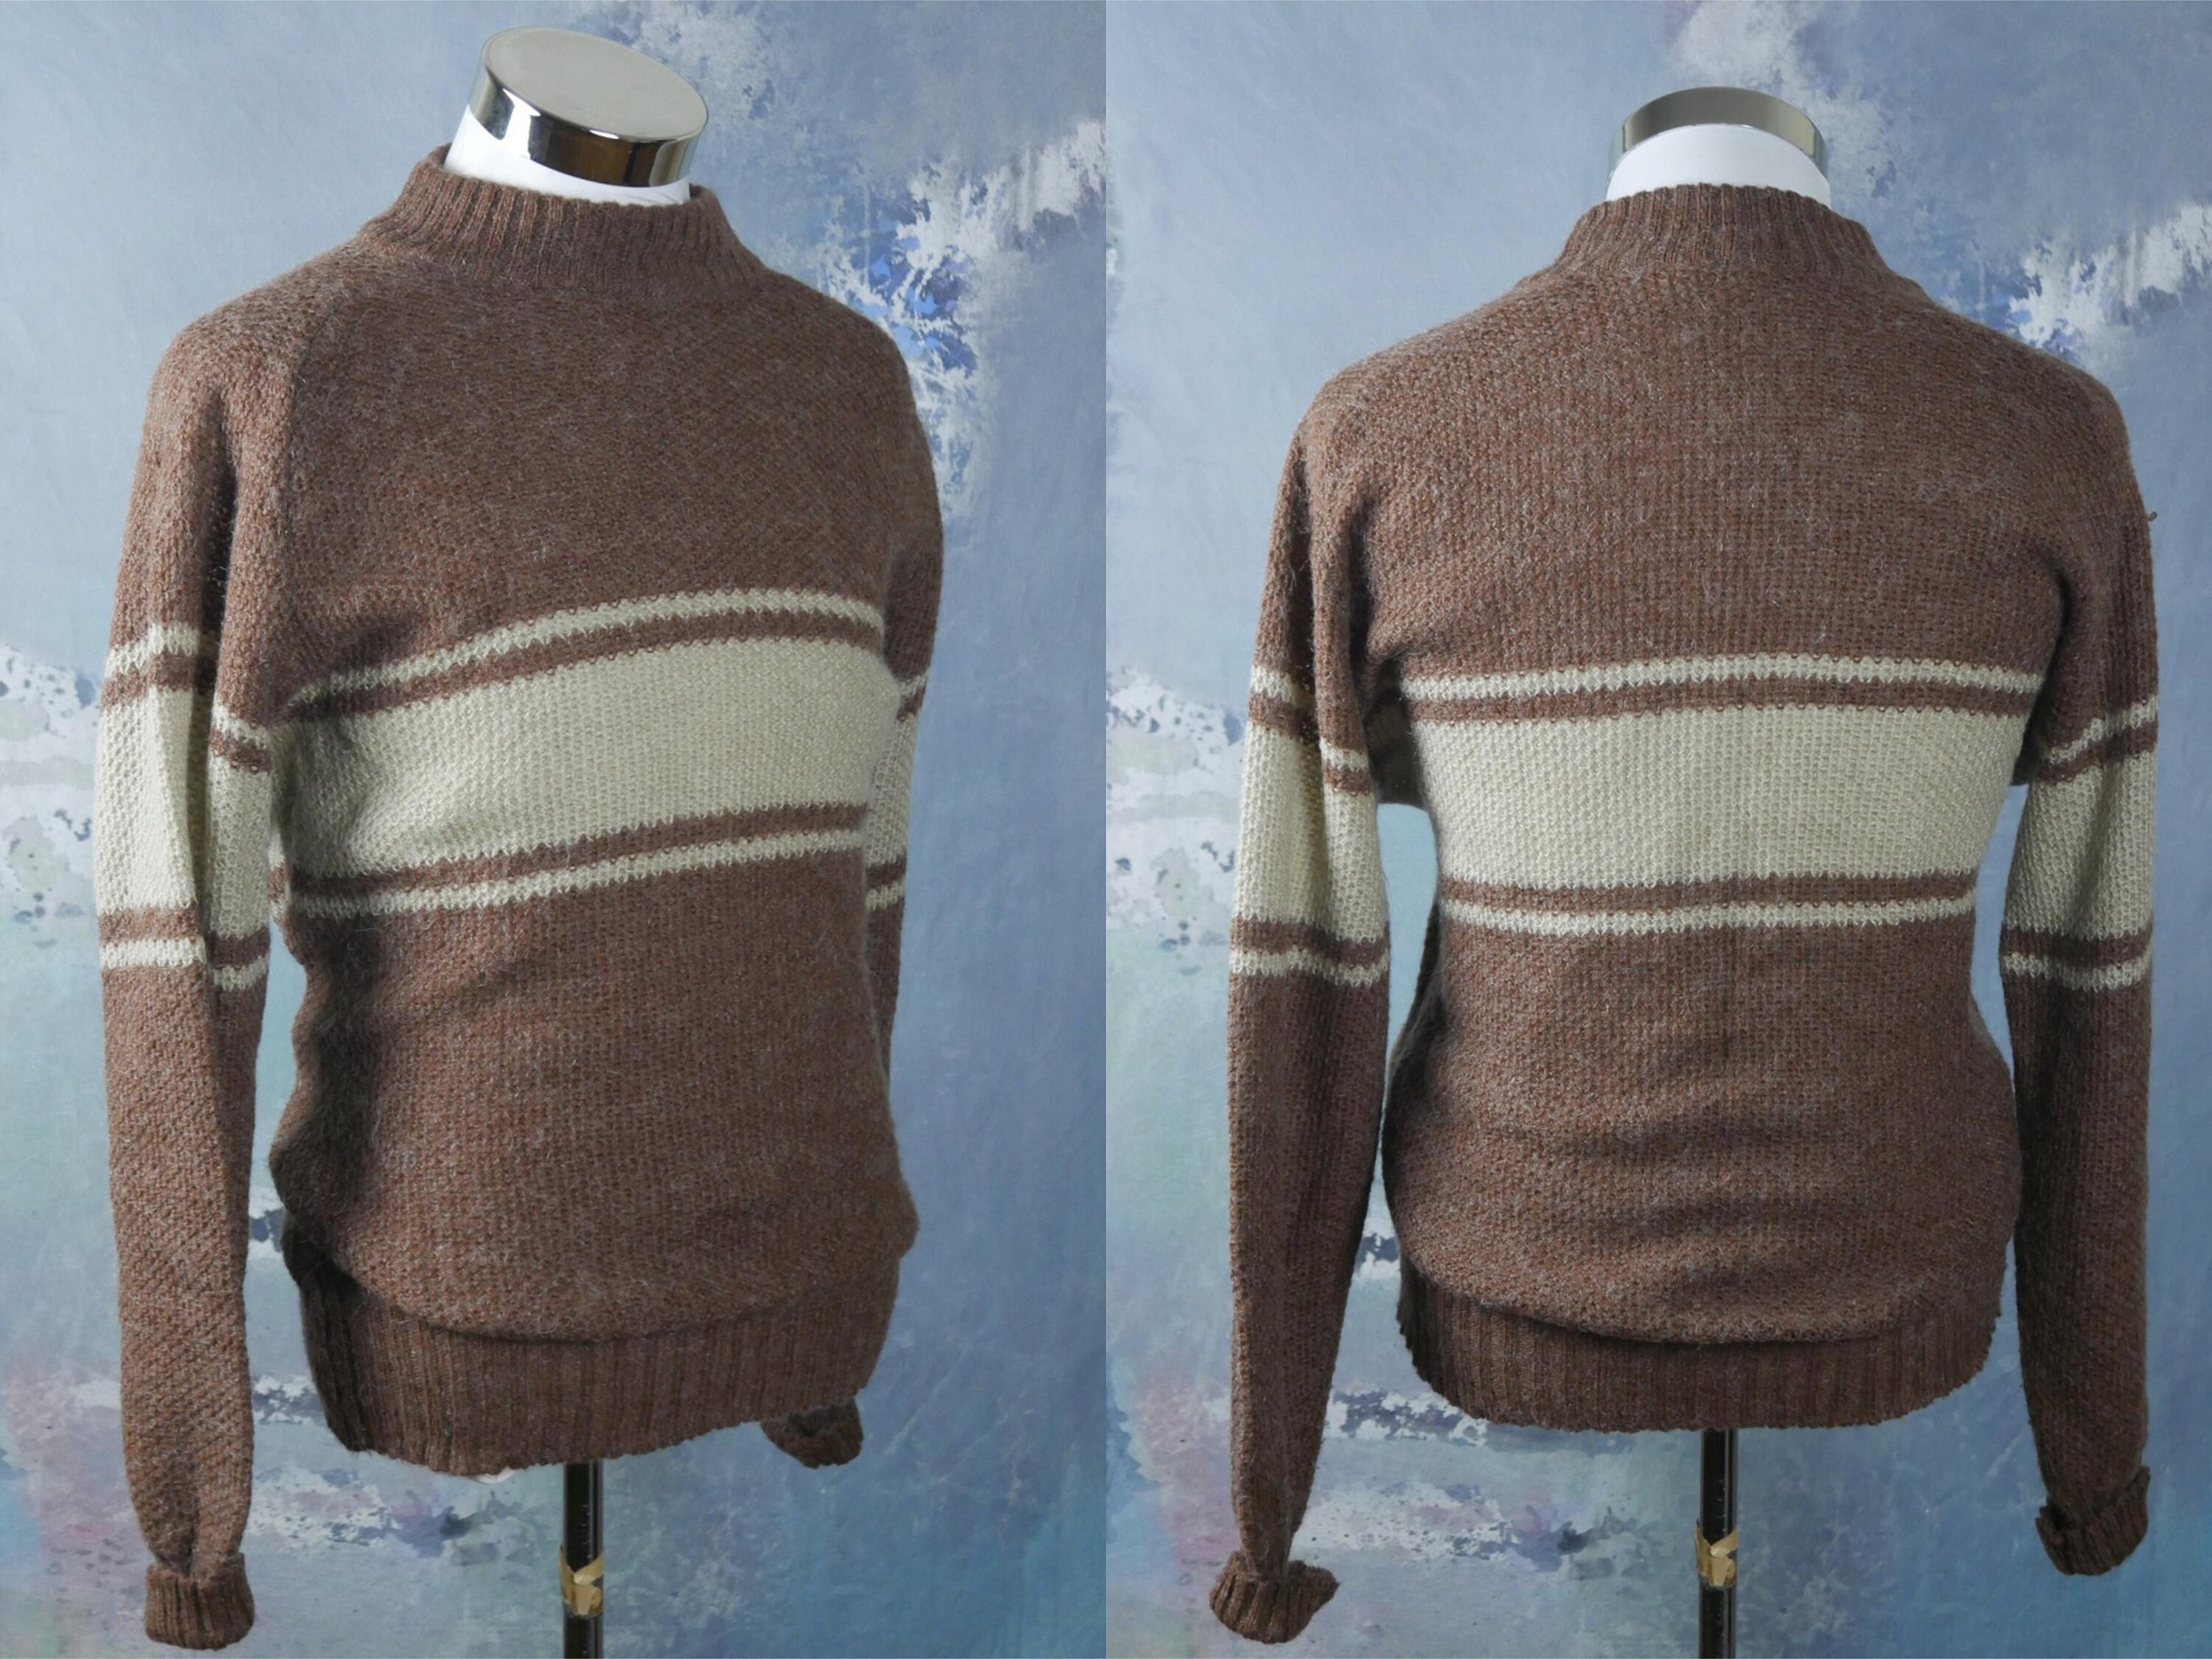 42b67c29e9 1970s Wool Sweater Brown   Beige Finnish Vintage Knit